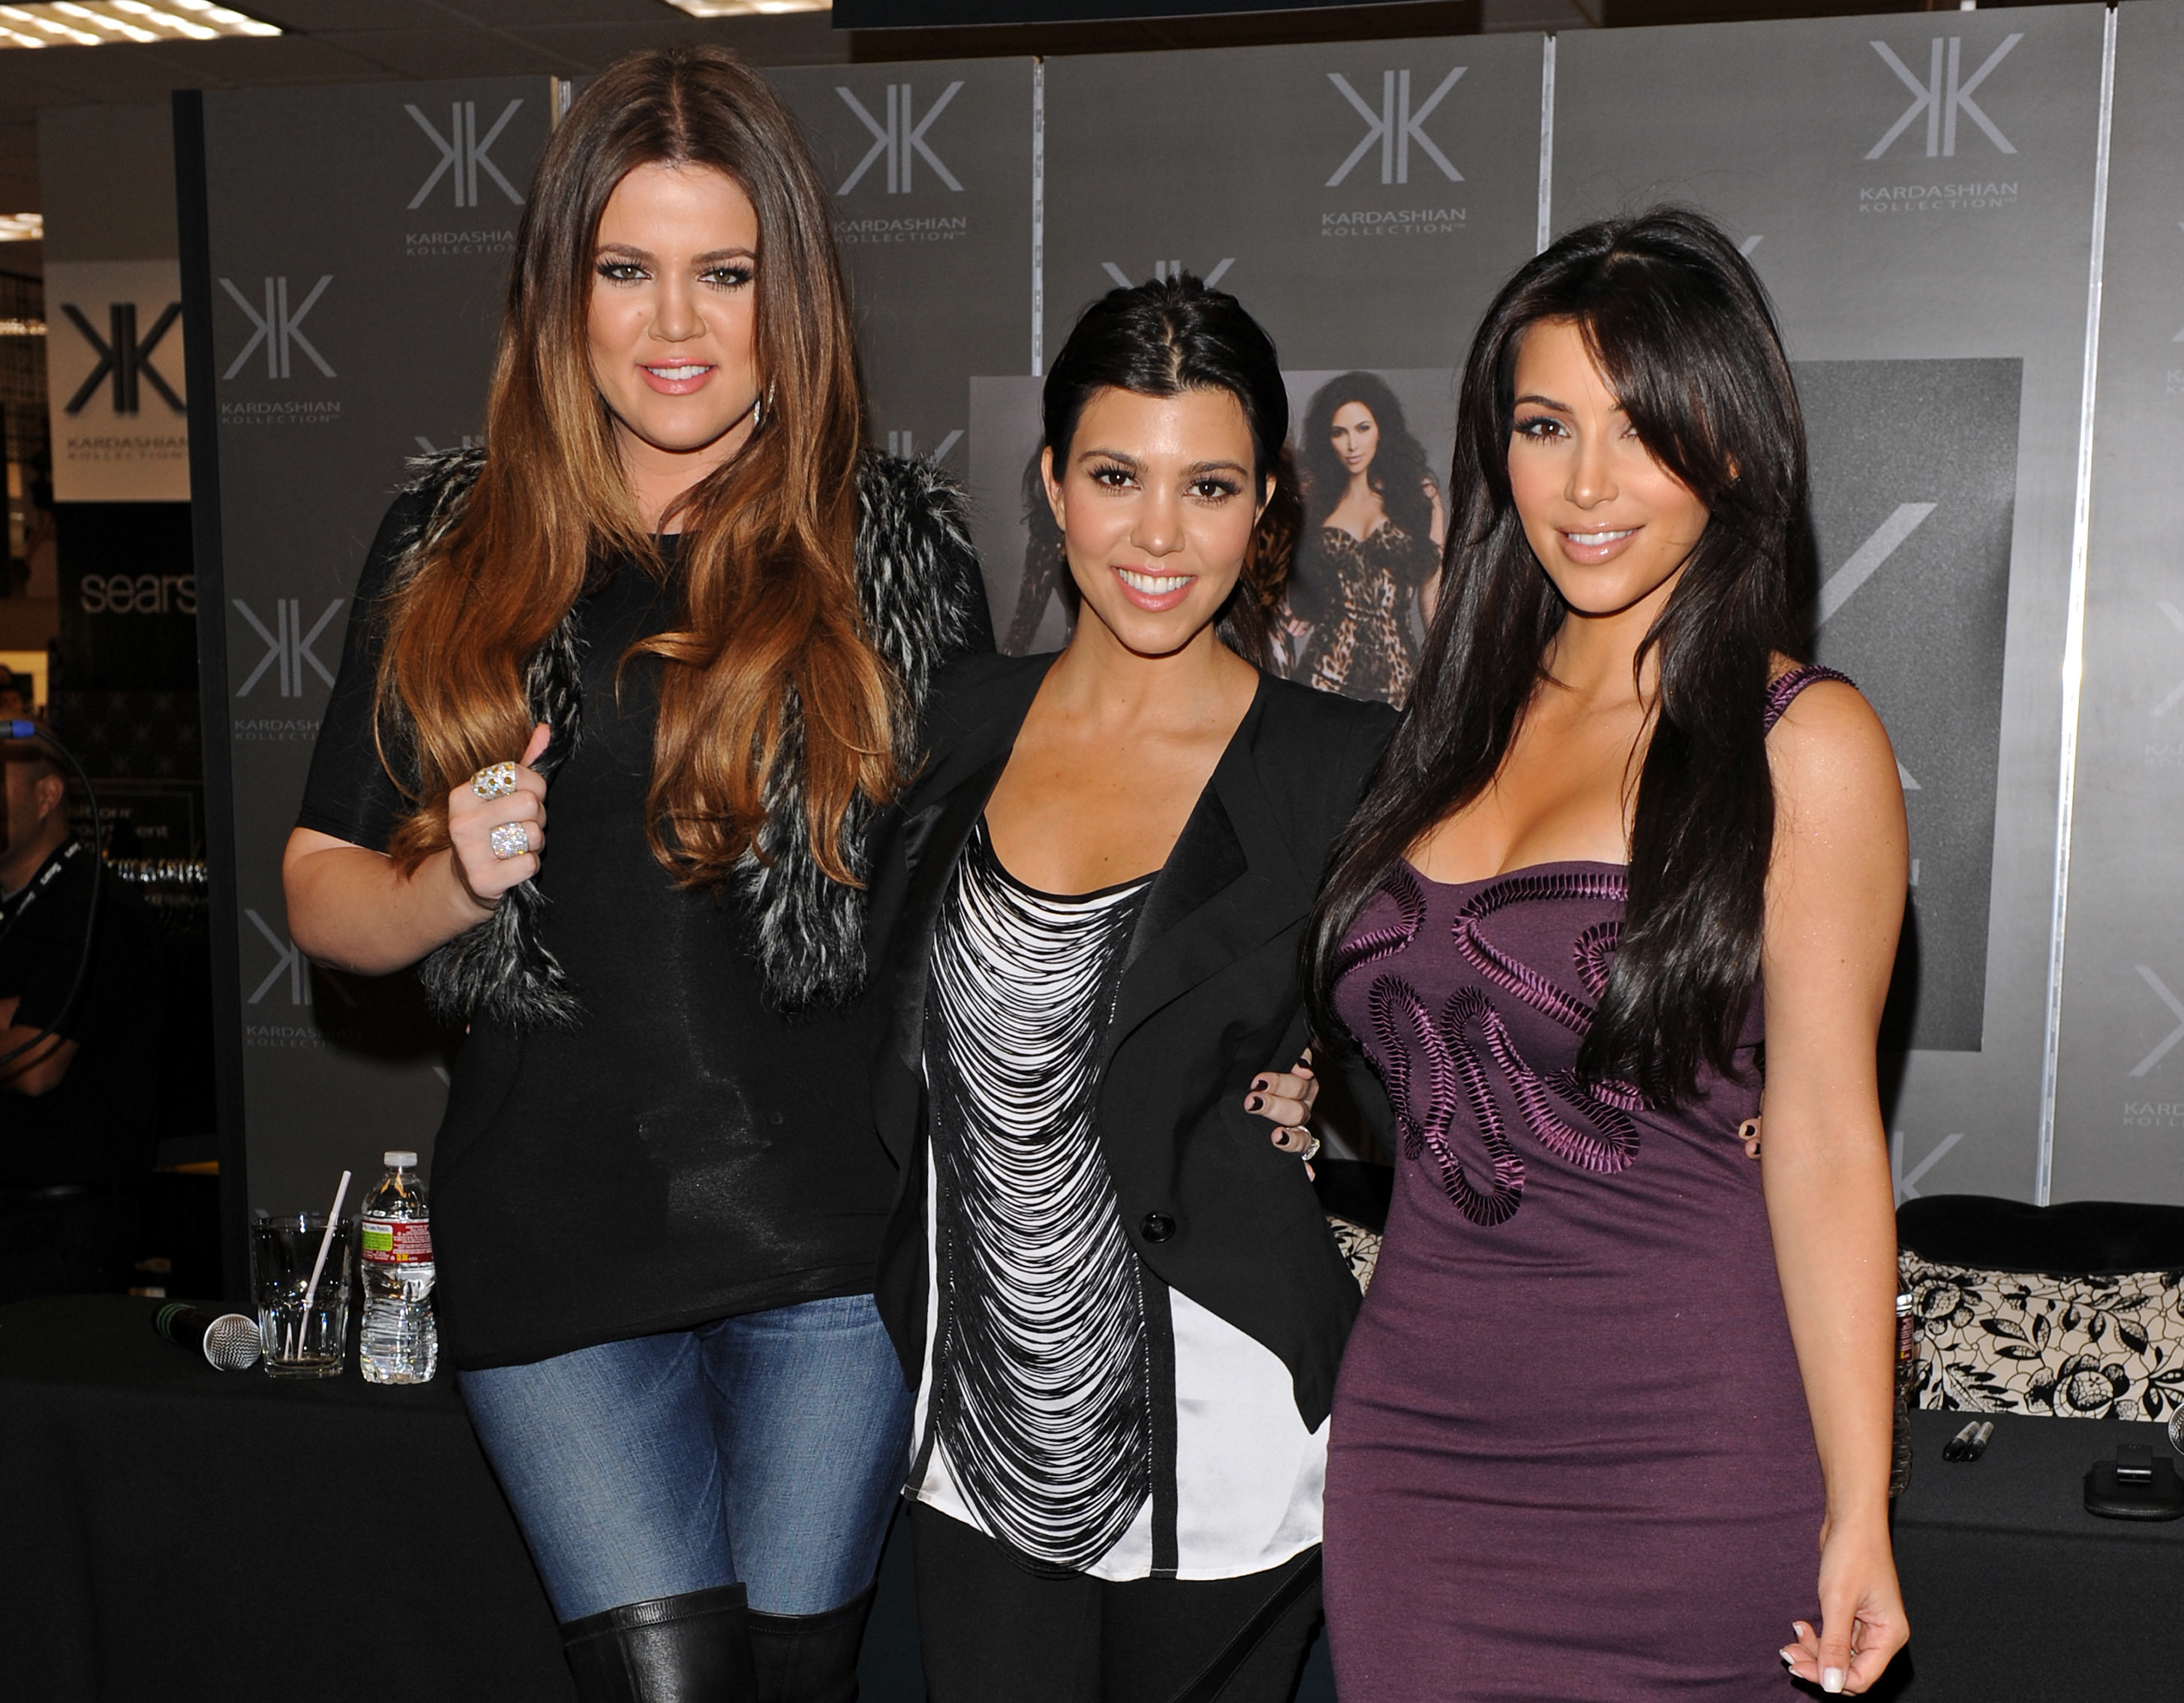 Kim kourtney khloe kardashian k dash kardashian kollection